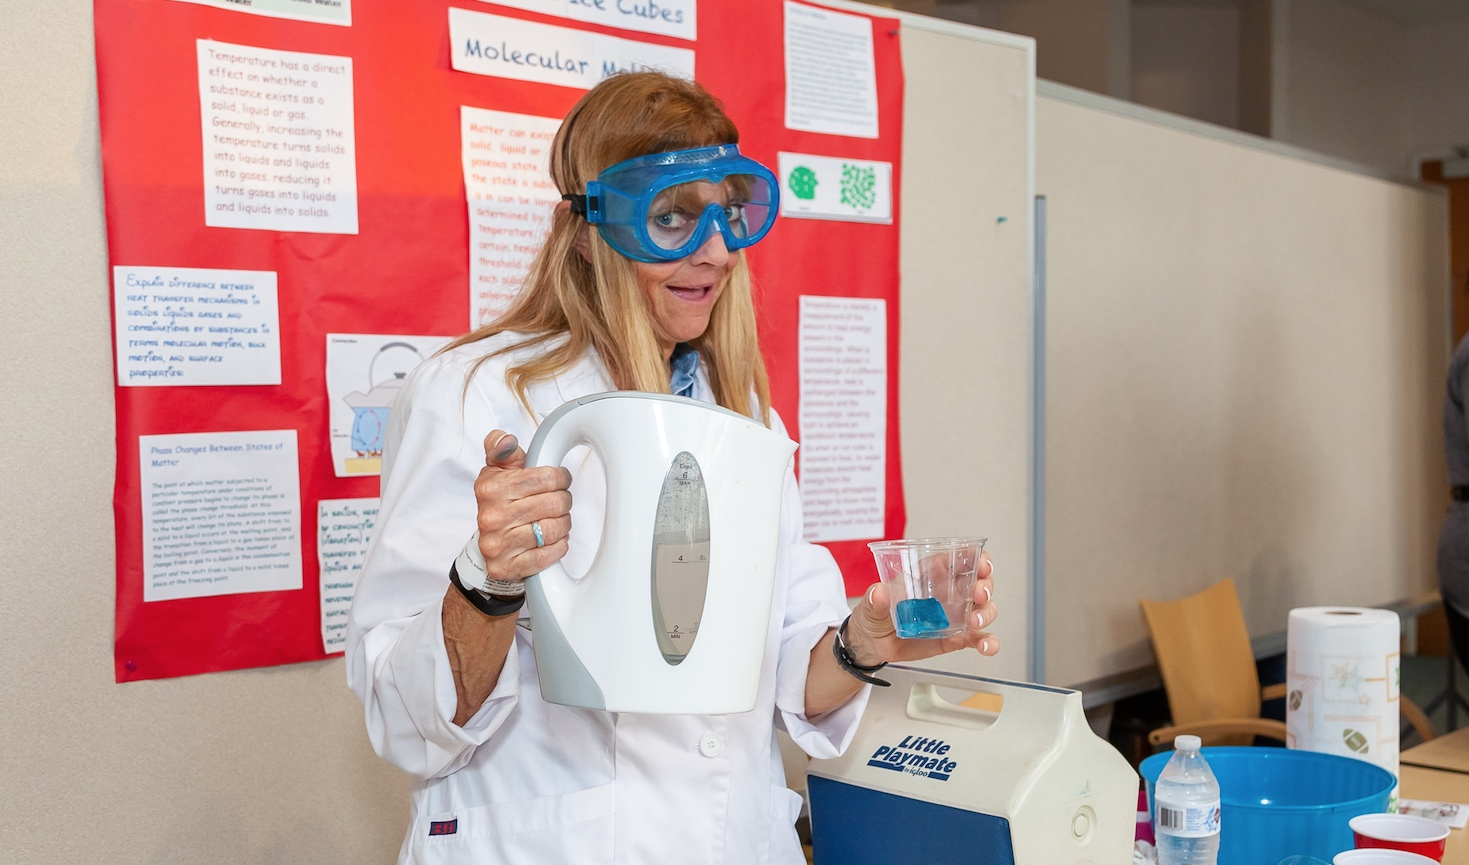 A teacher uses an hot water kettle and gelatin for a science demo